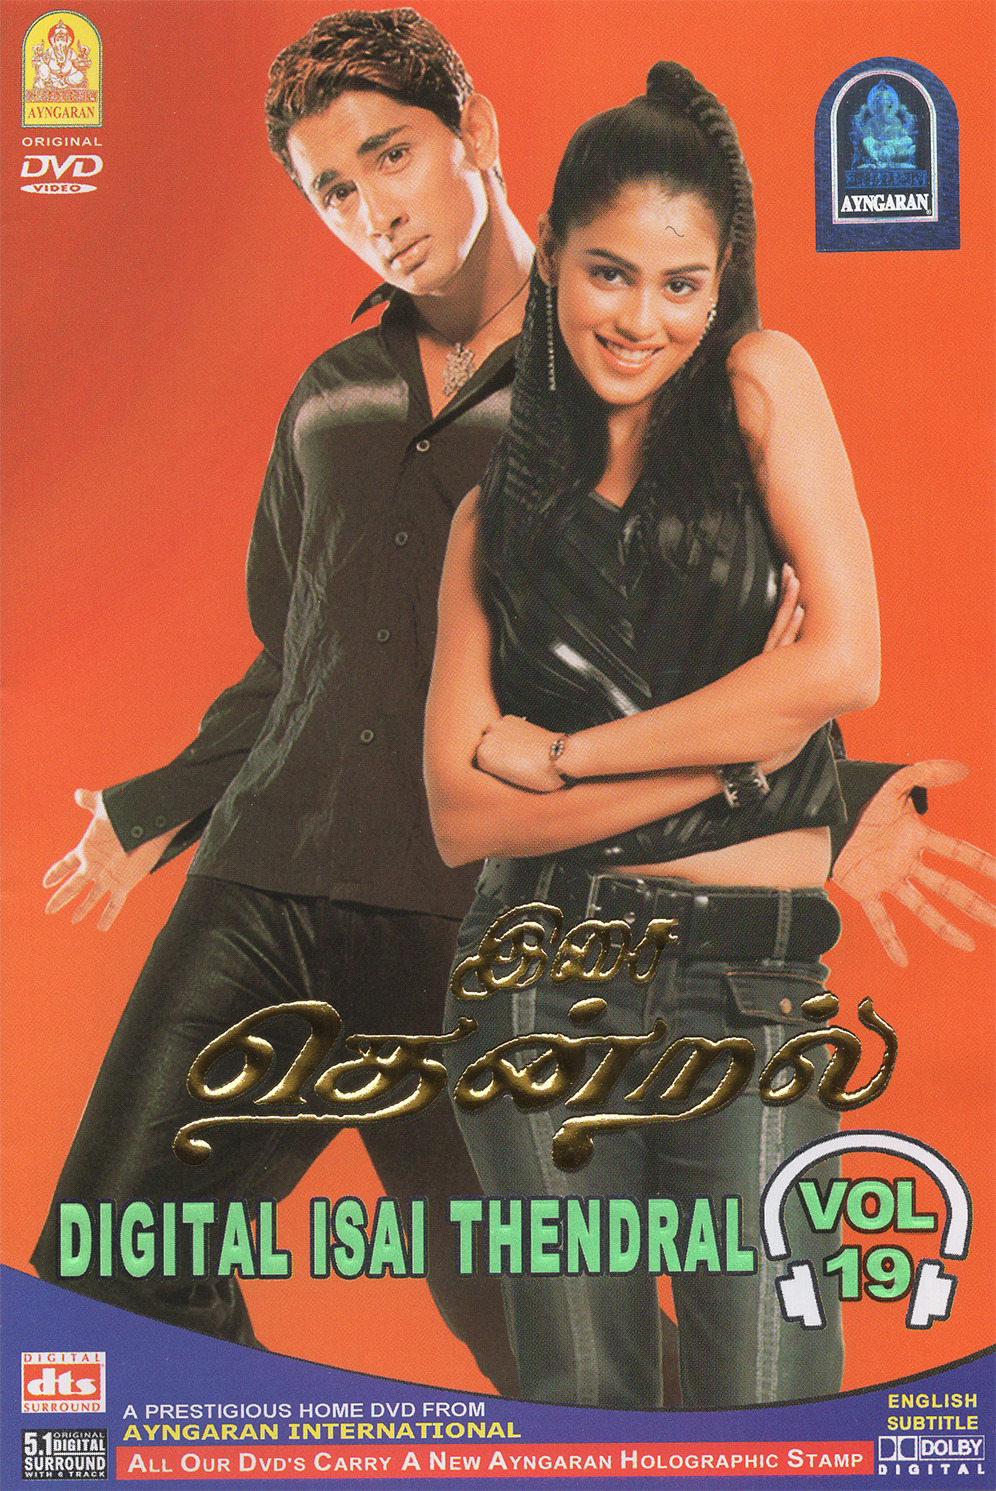 Digital Isai Thendral Vol 19